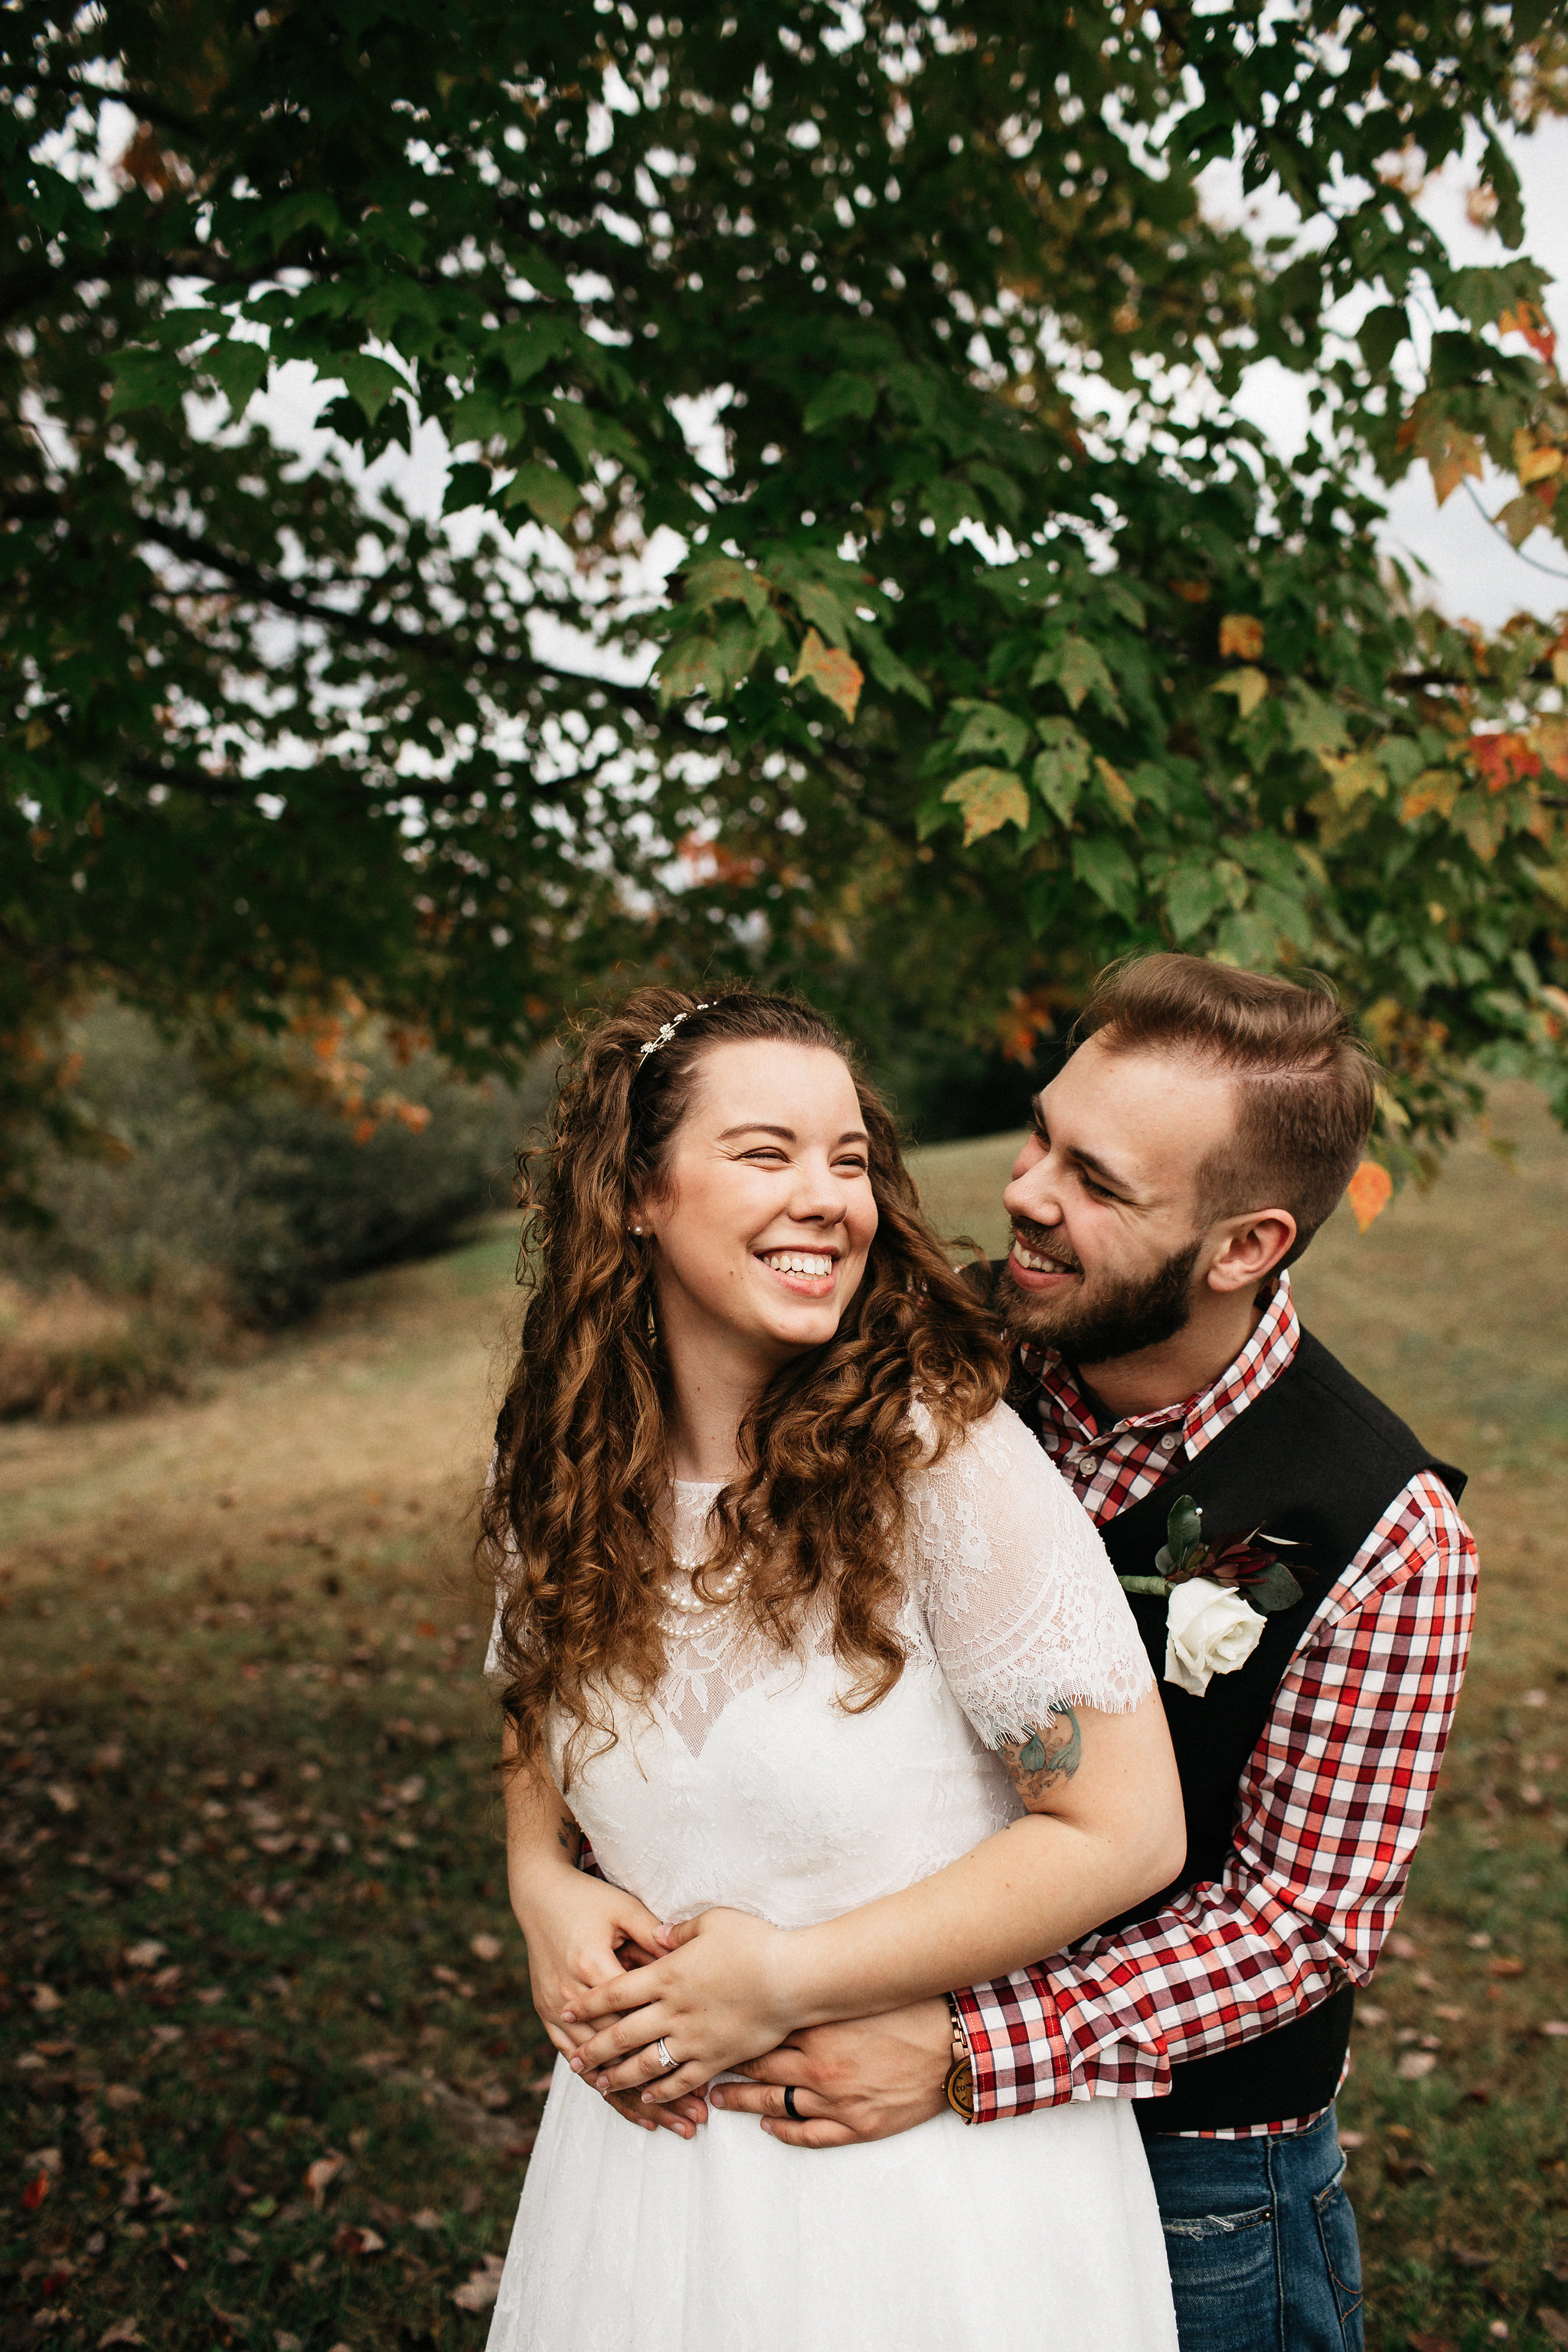 Caitlin&CodyMarried2017-11-03at19.19.39PM180.jpg